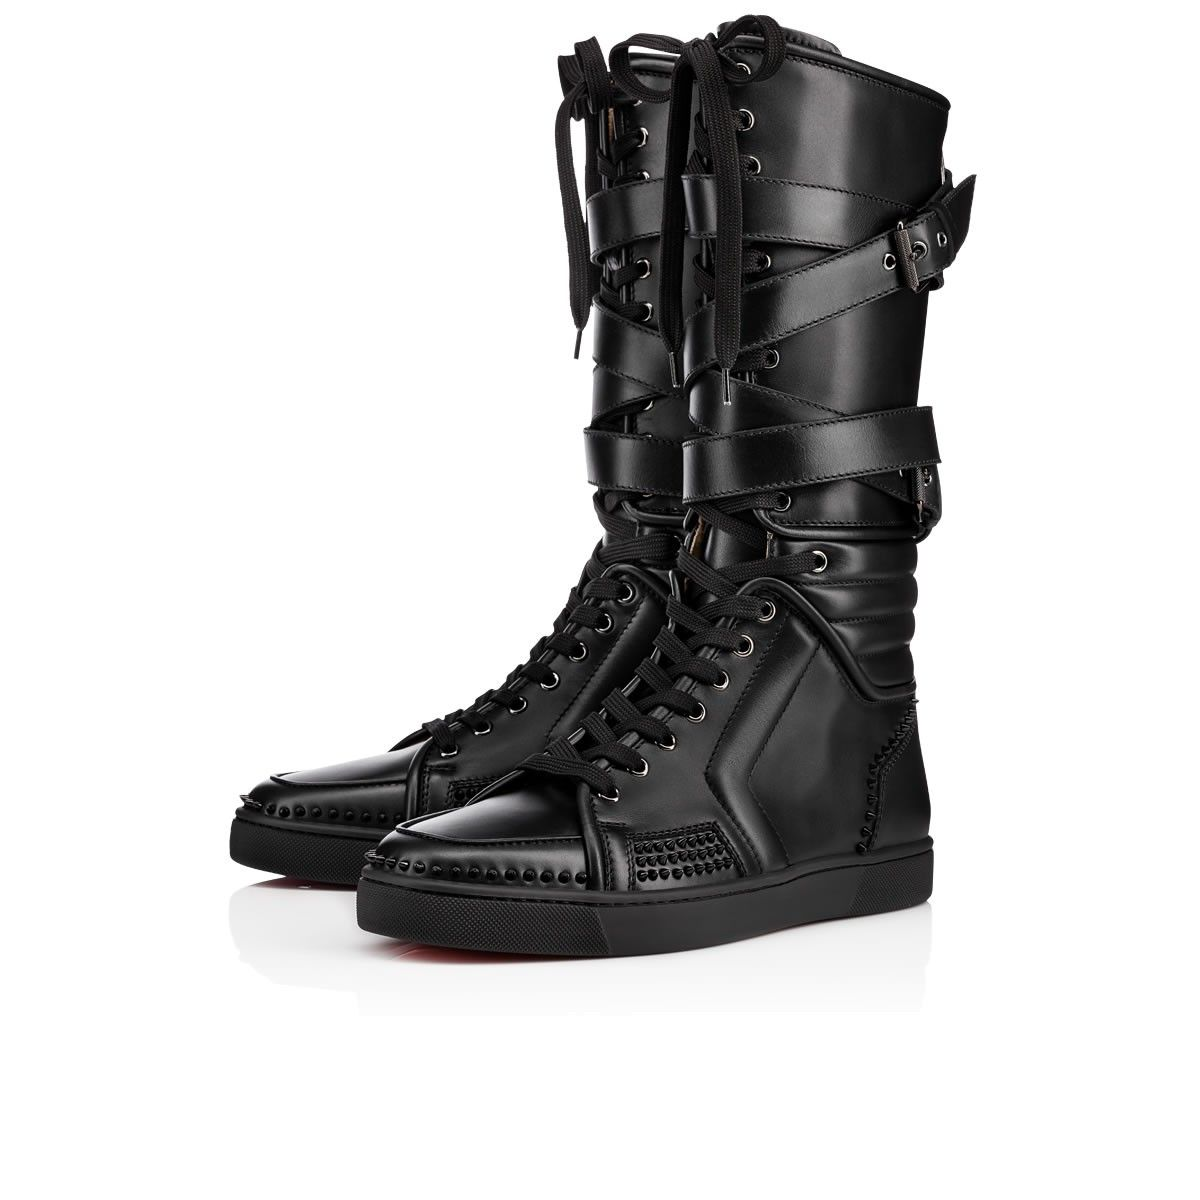 info for 286ad c14cc CHRISTIAN LOUBOUTIN Sporty Dude Calf - Shoes - Men ...